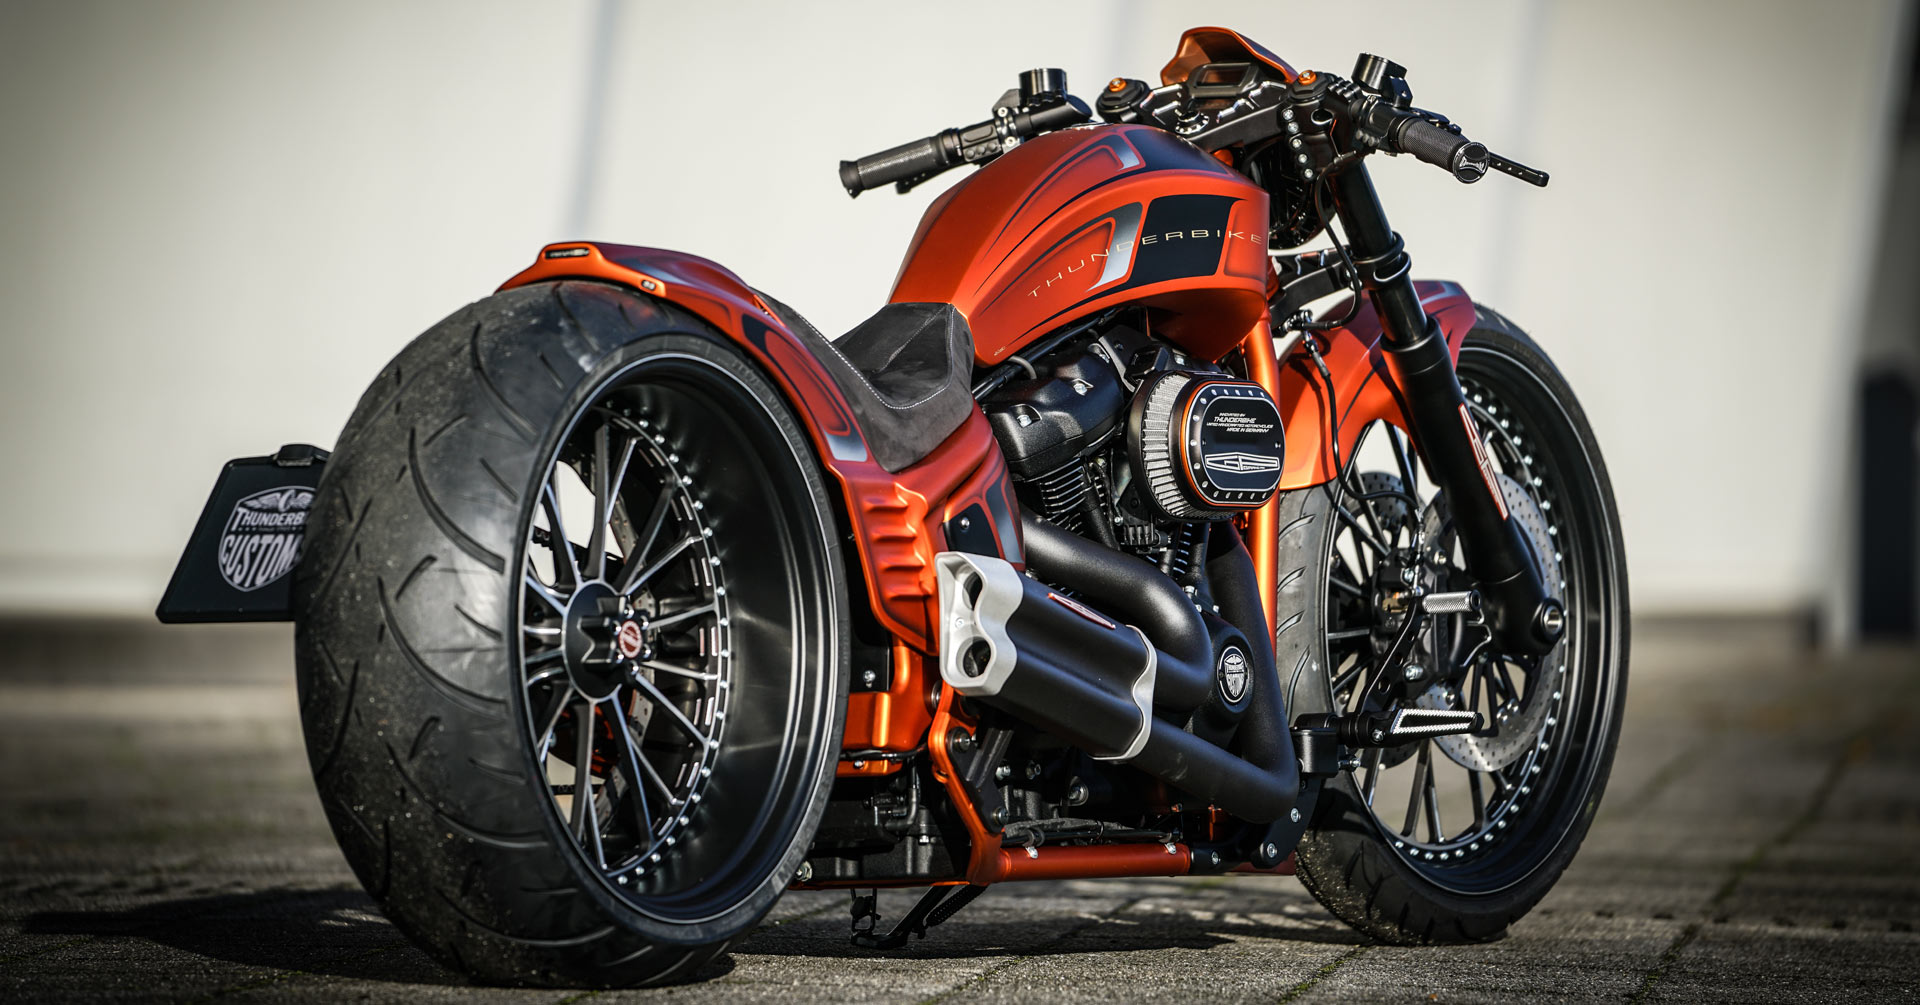 Gp Style on Custom Harley Softail Frames